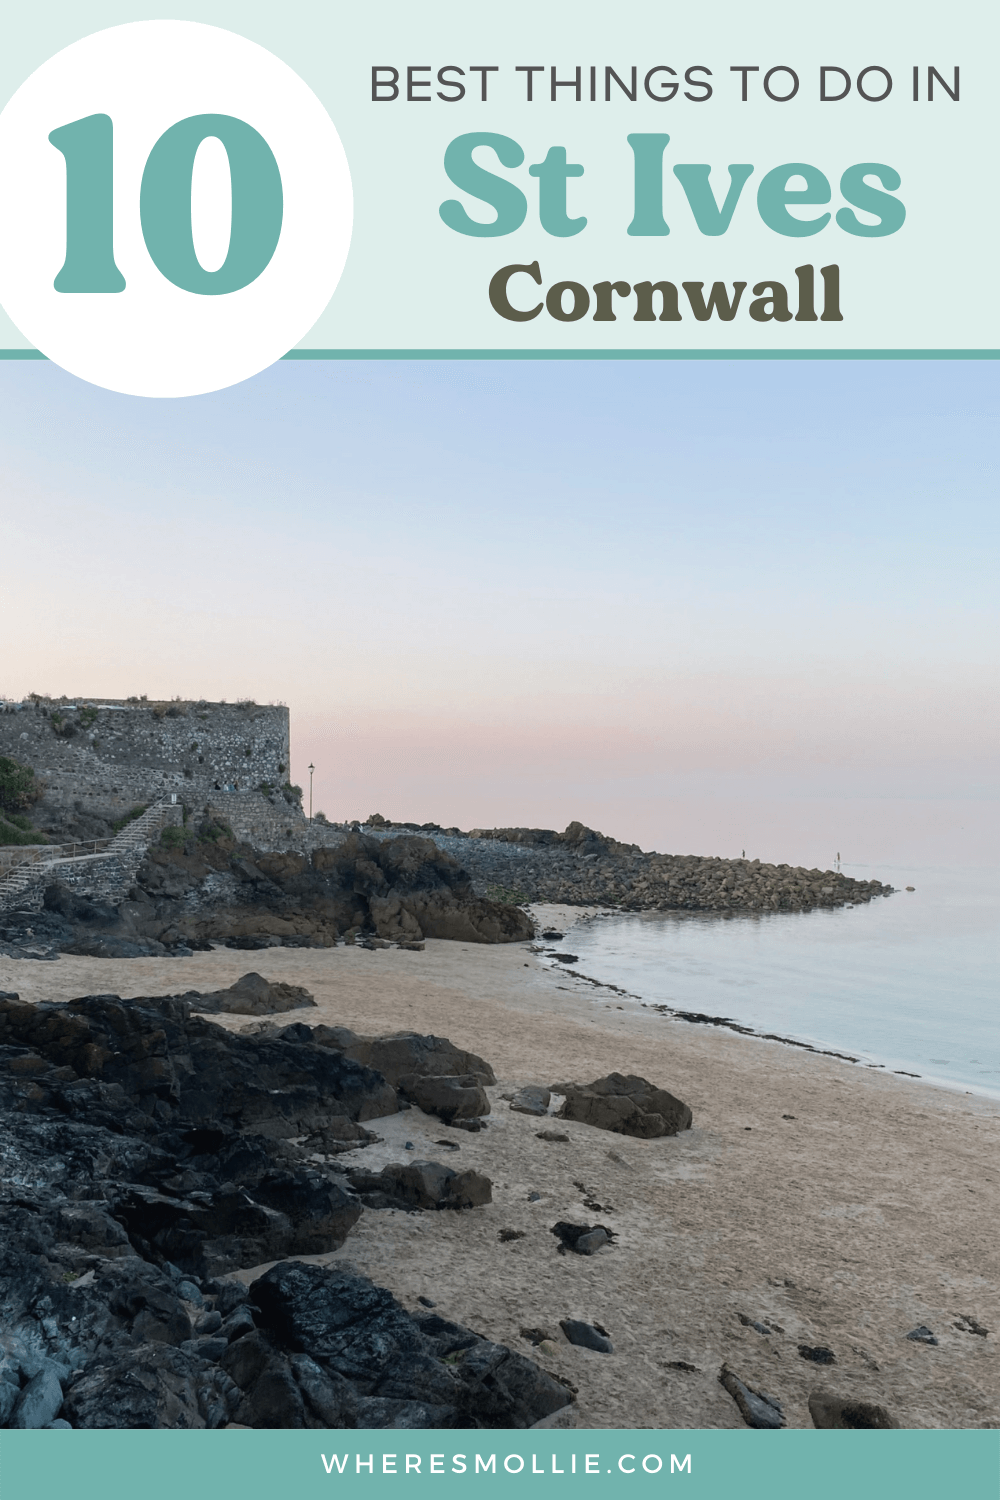 The best things to do in St. Ives, Cornwall